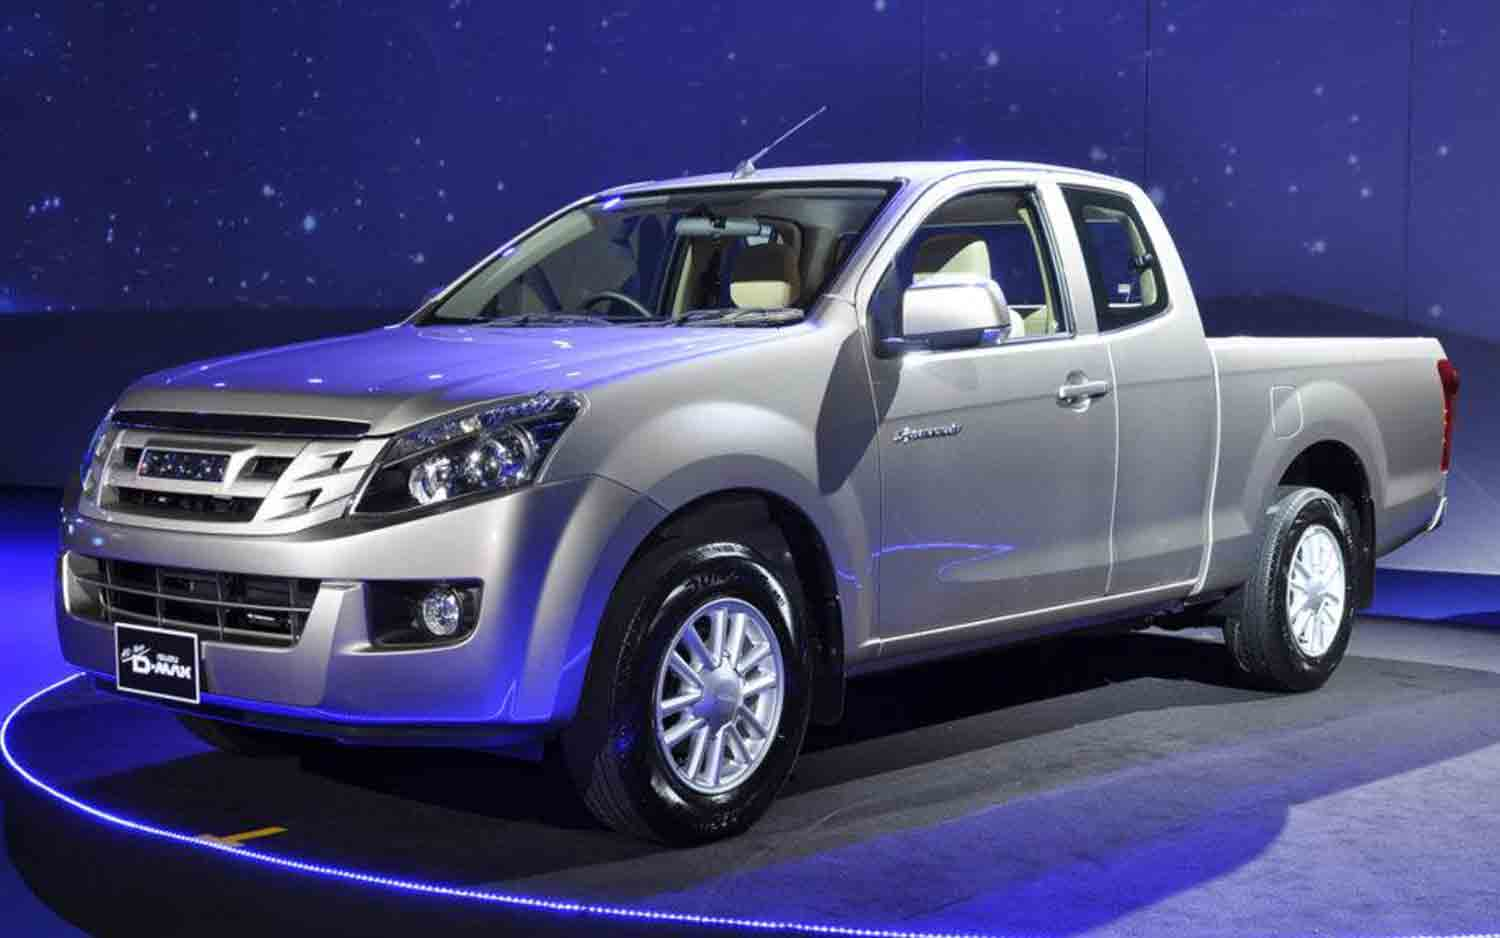 Isuzu's New D-Max Pickup Is A Facelifted 2013 Chevrolet ...